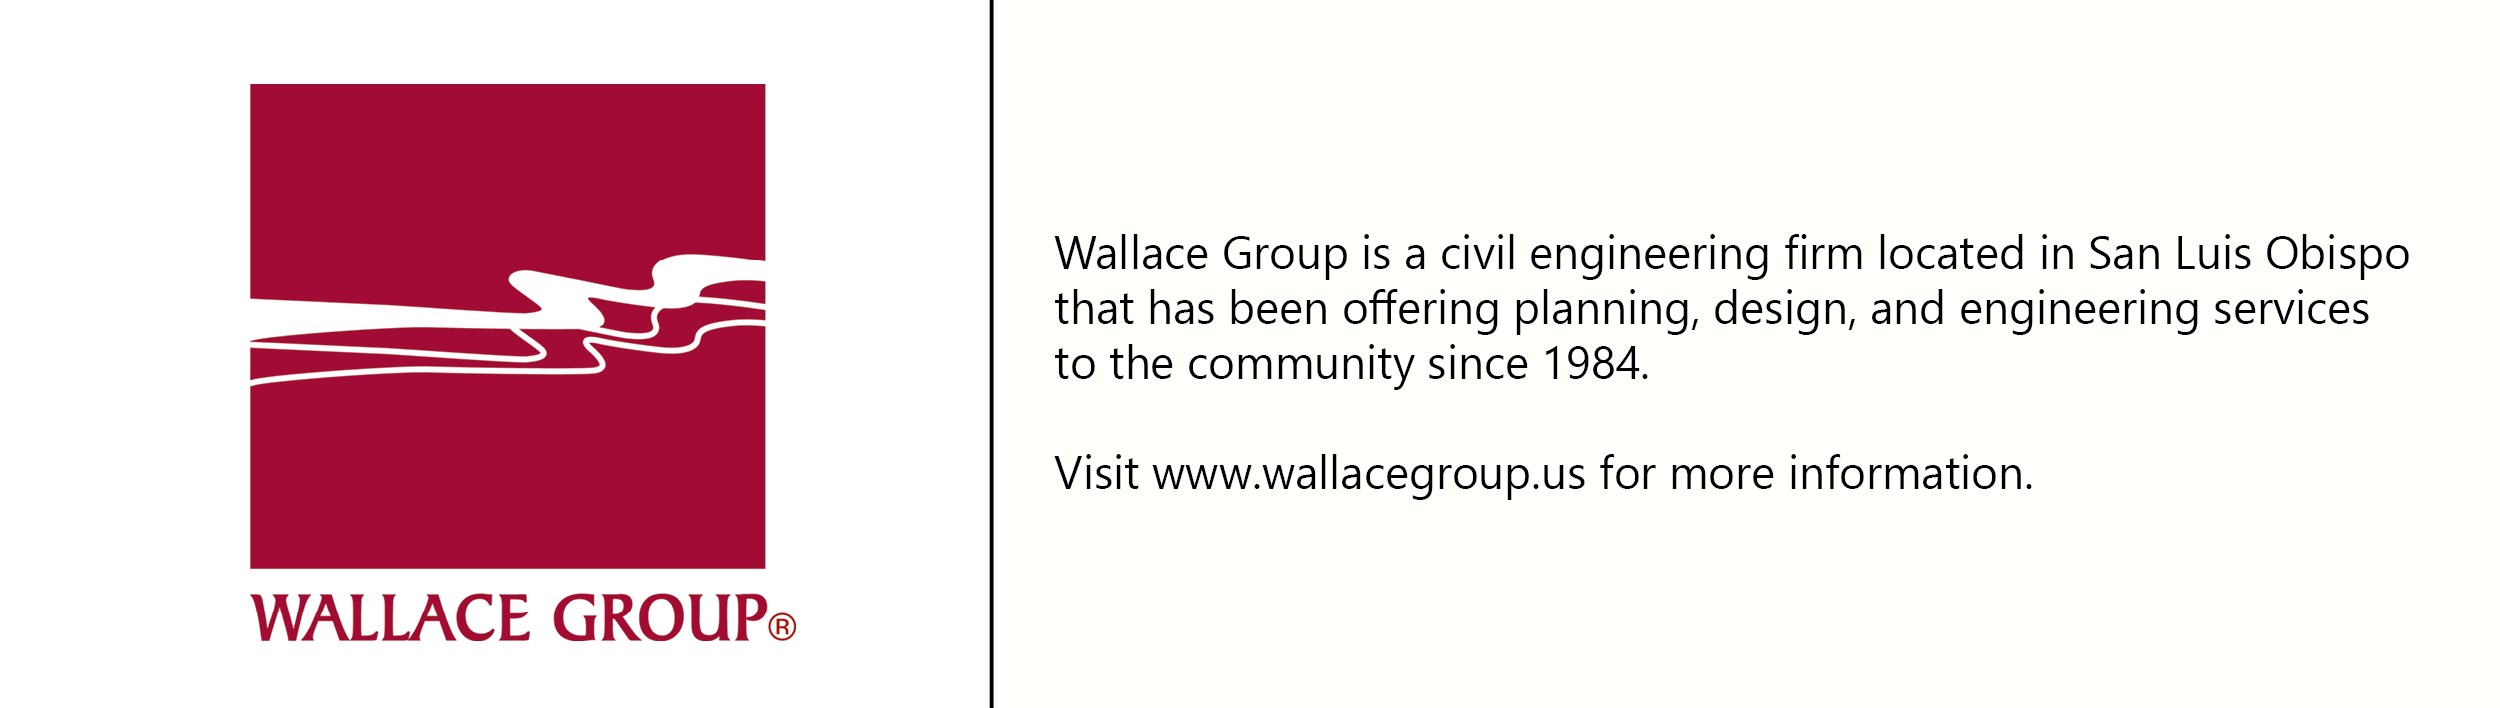 Wallace Group logo with description of company